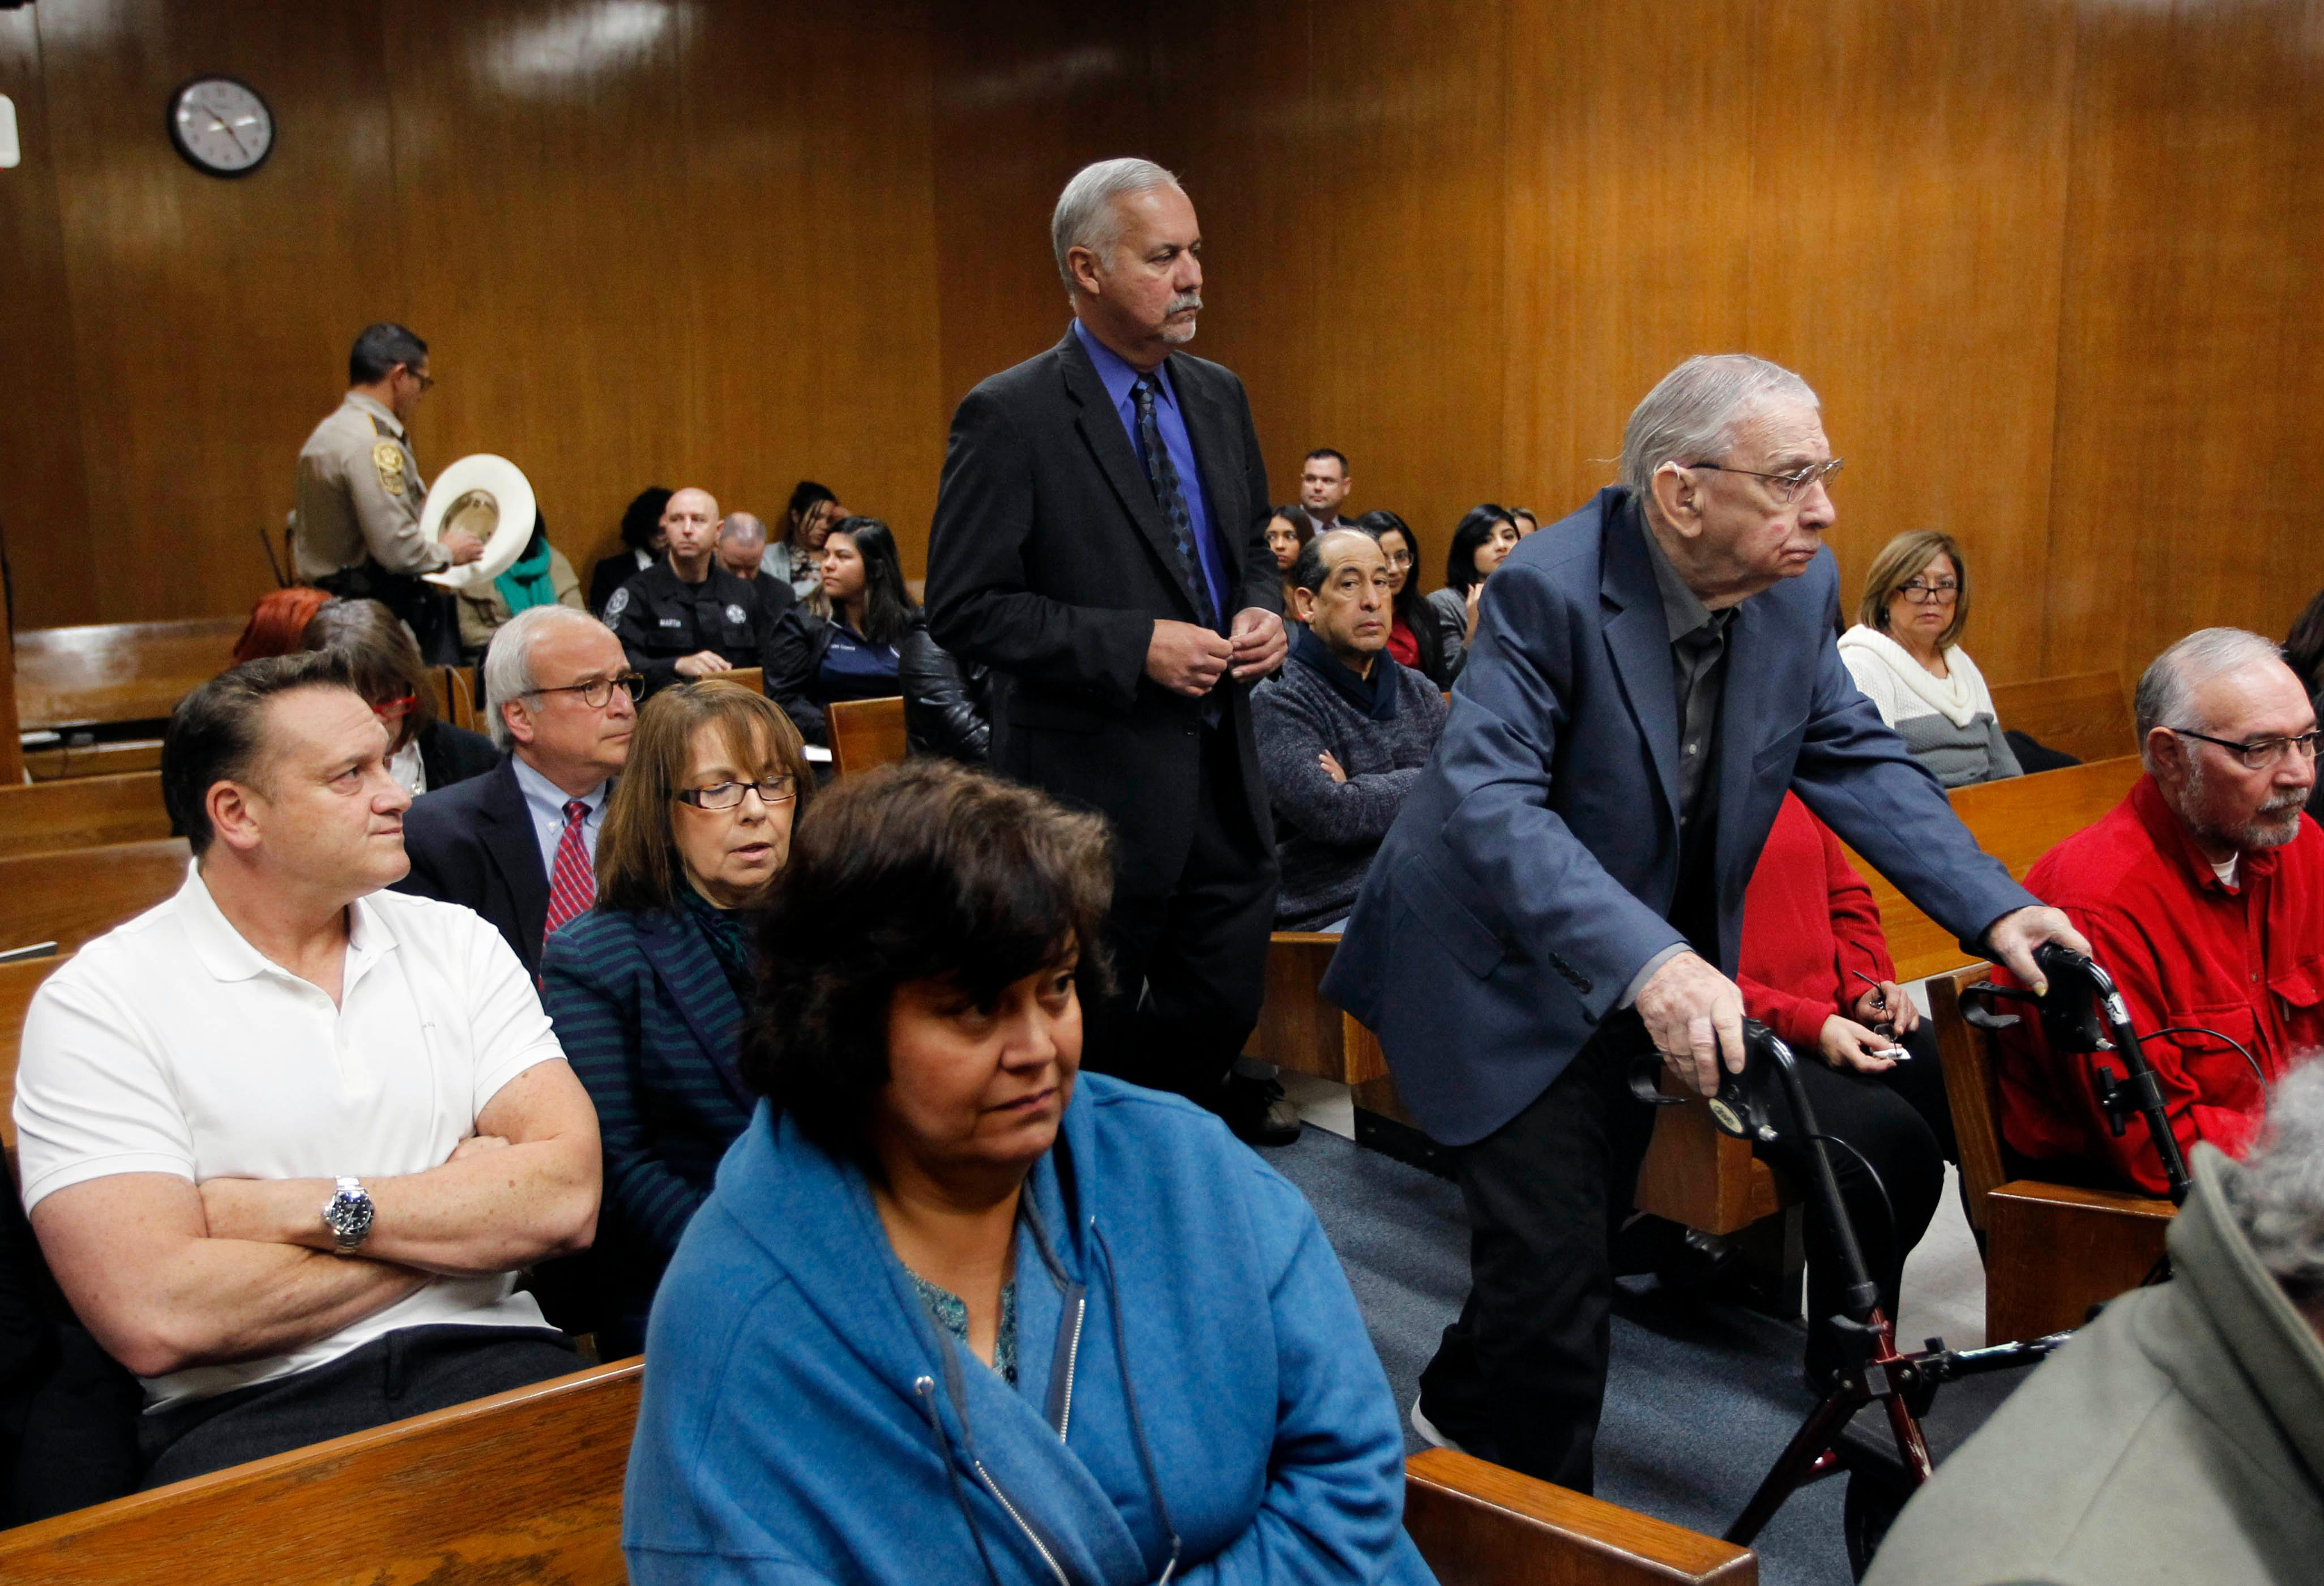 John Bernard Feit enters the 92nd state District Court for the fifth day of his trial for the murder of Irene Garza as Nick Cavazos, left, and Lynda de la Vida, second from left, both extended members of Irene Garza, sits in court Wednesday, December 6, 2017, at the Hidalgo County Courthouse in Edinburg.  (Nathan Lambrecht/The Monitor/Pool)